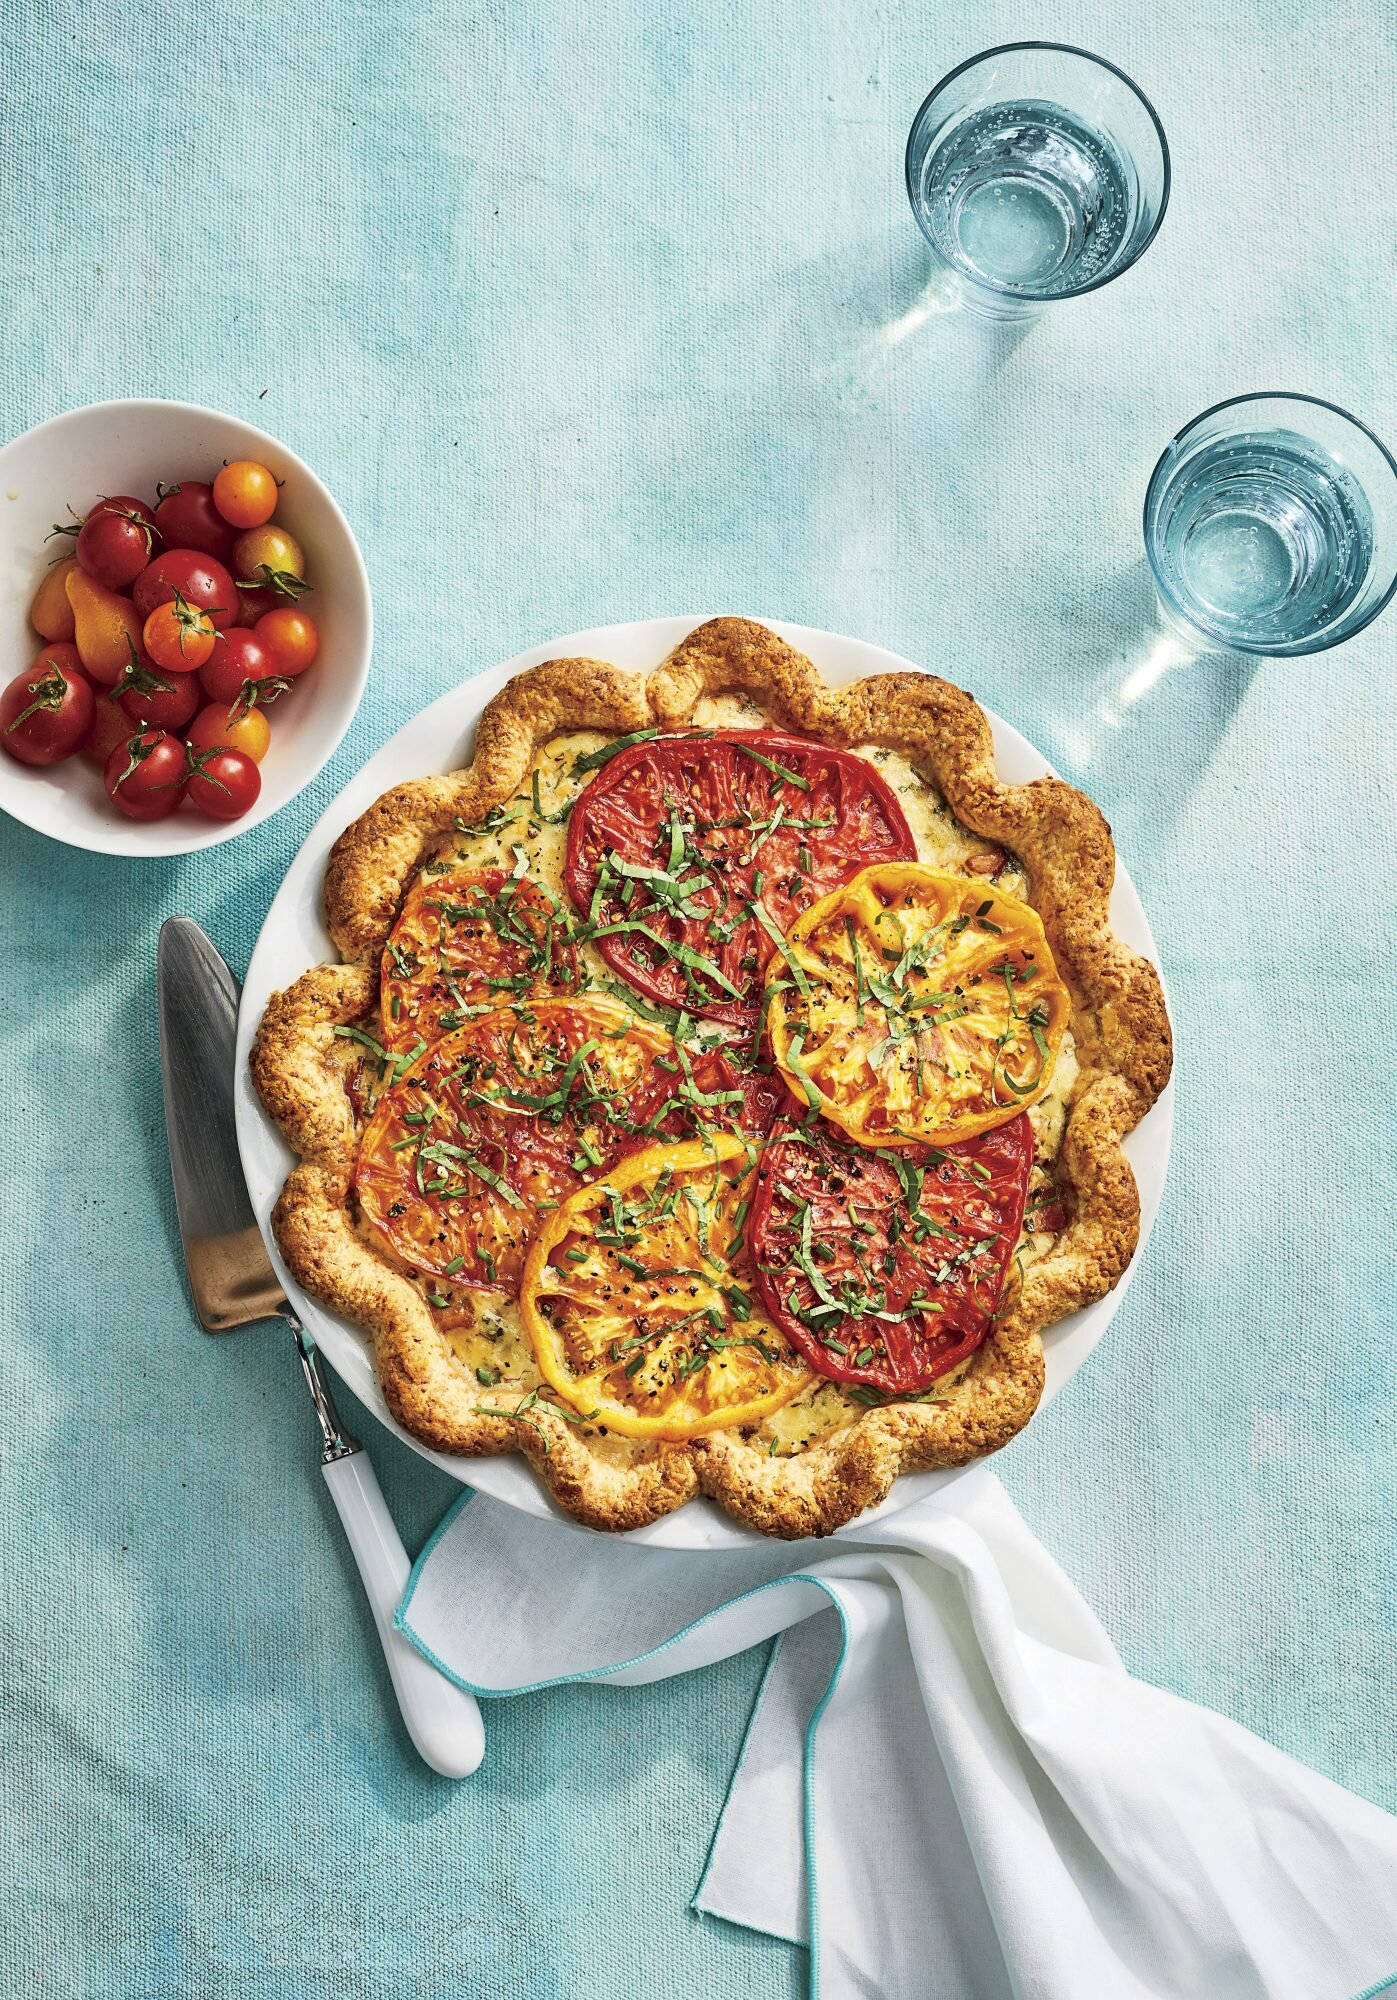 Southern Living Dec 2021 Christmas Buttermints Classic Southern Recipes For Every Month In 2021 Southern Living